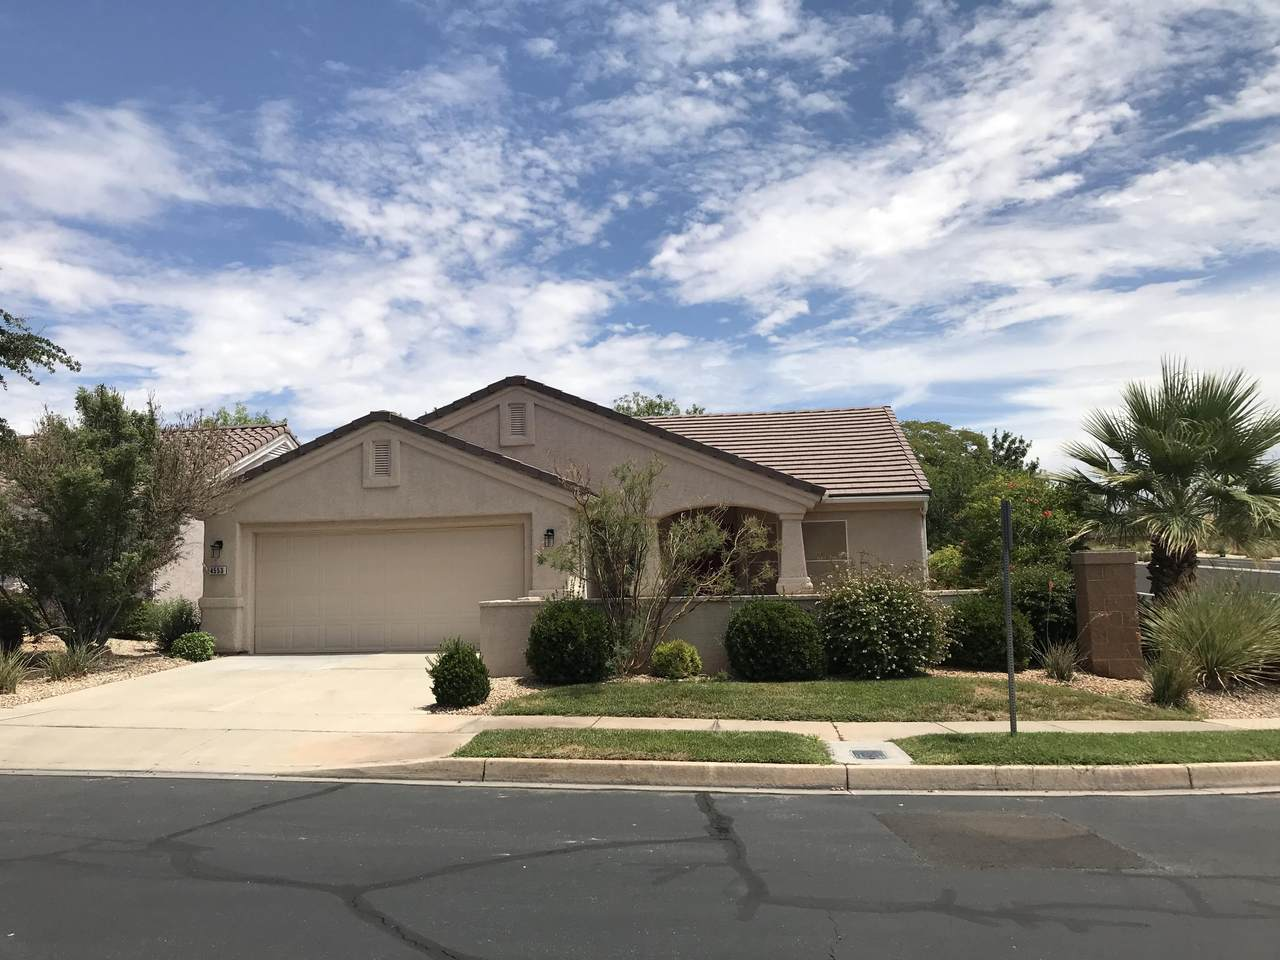 4553 Wide River Dr - Photo 1